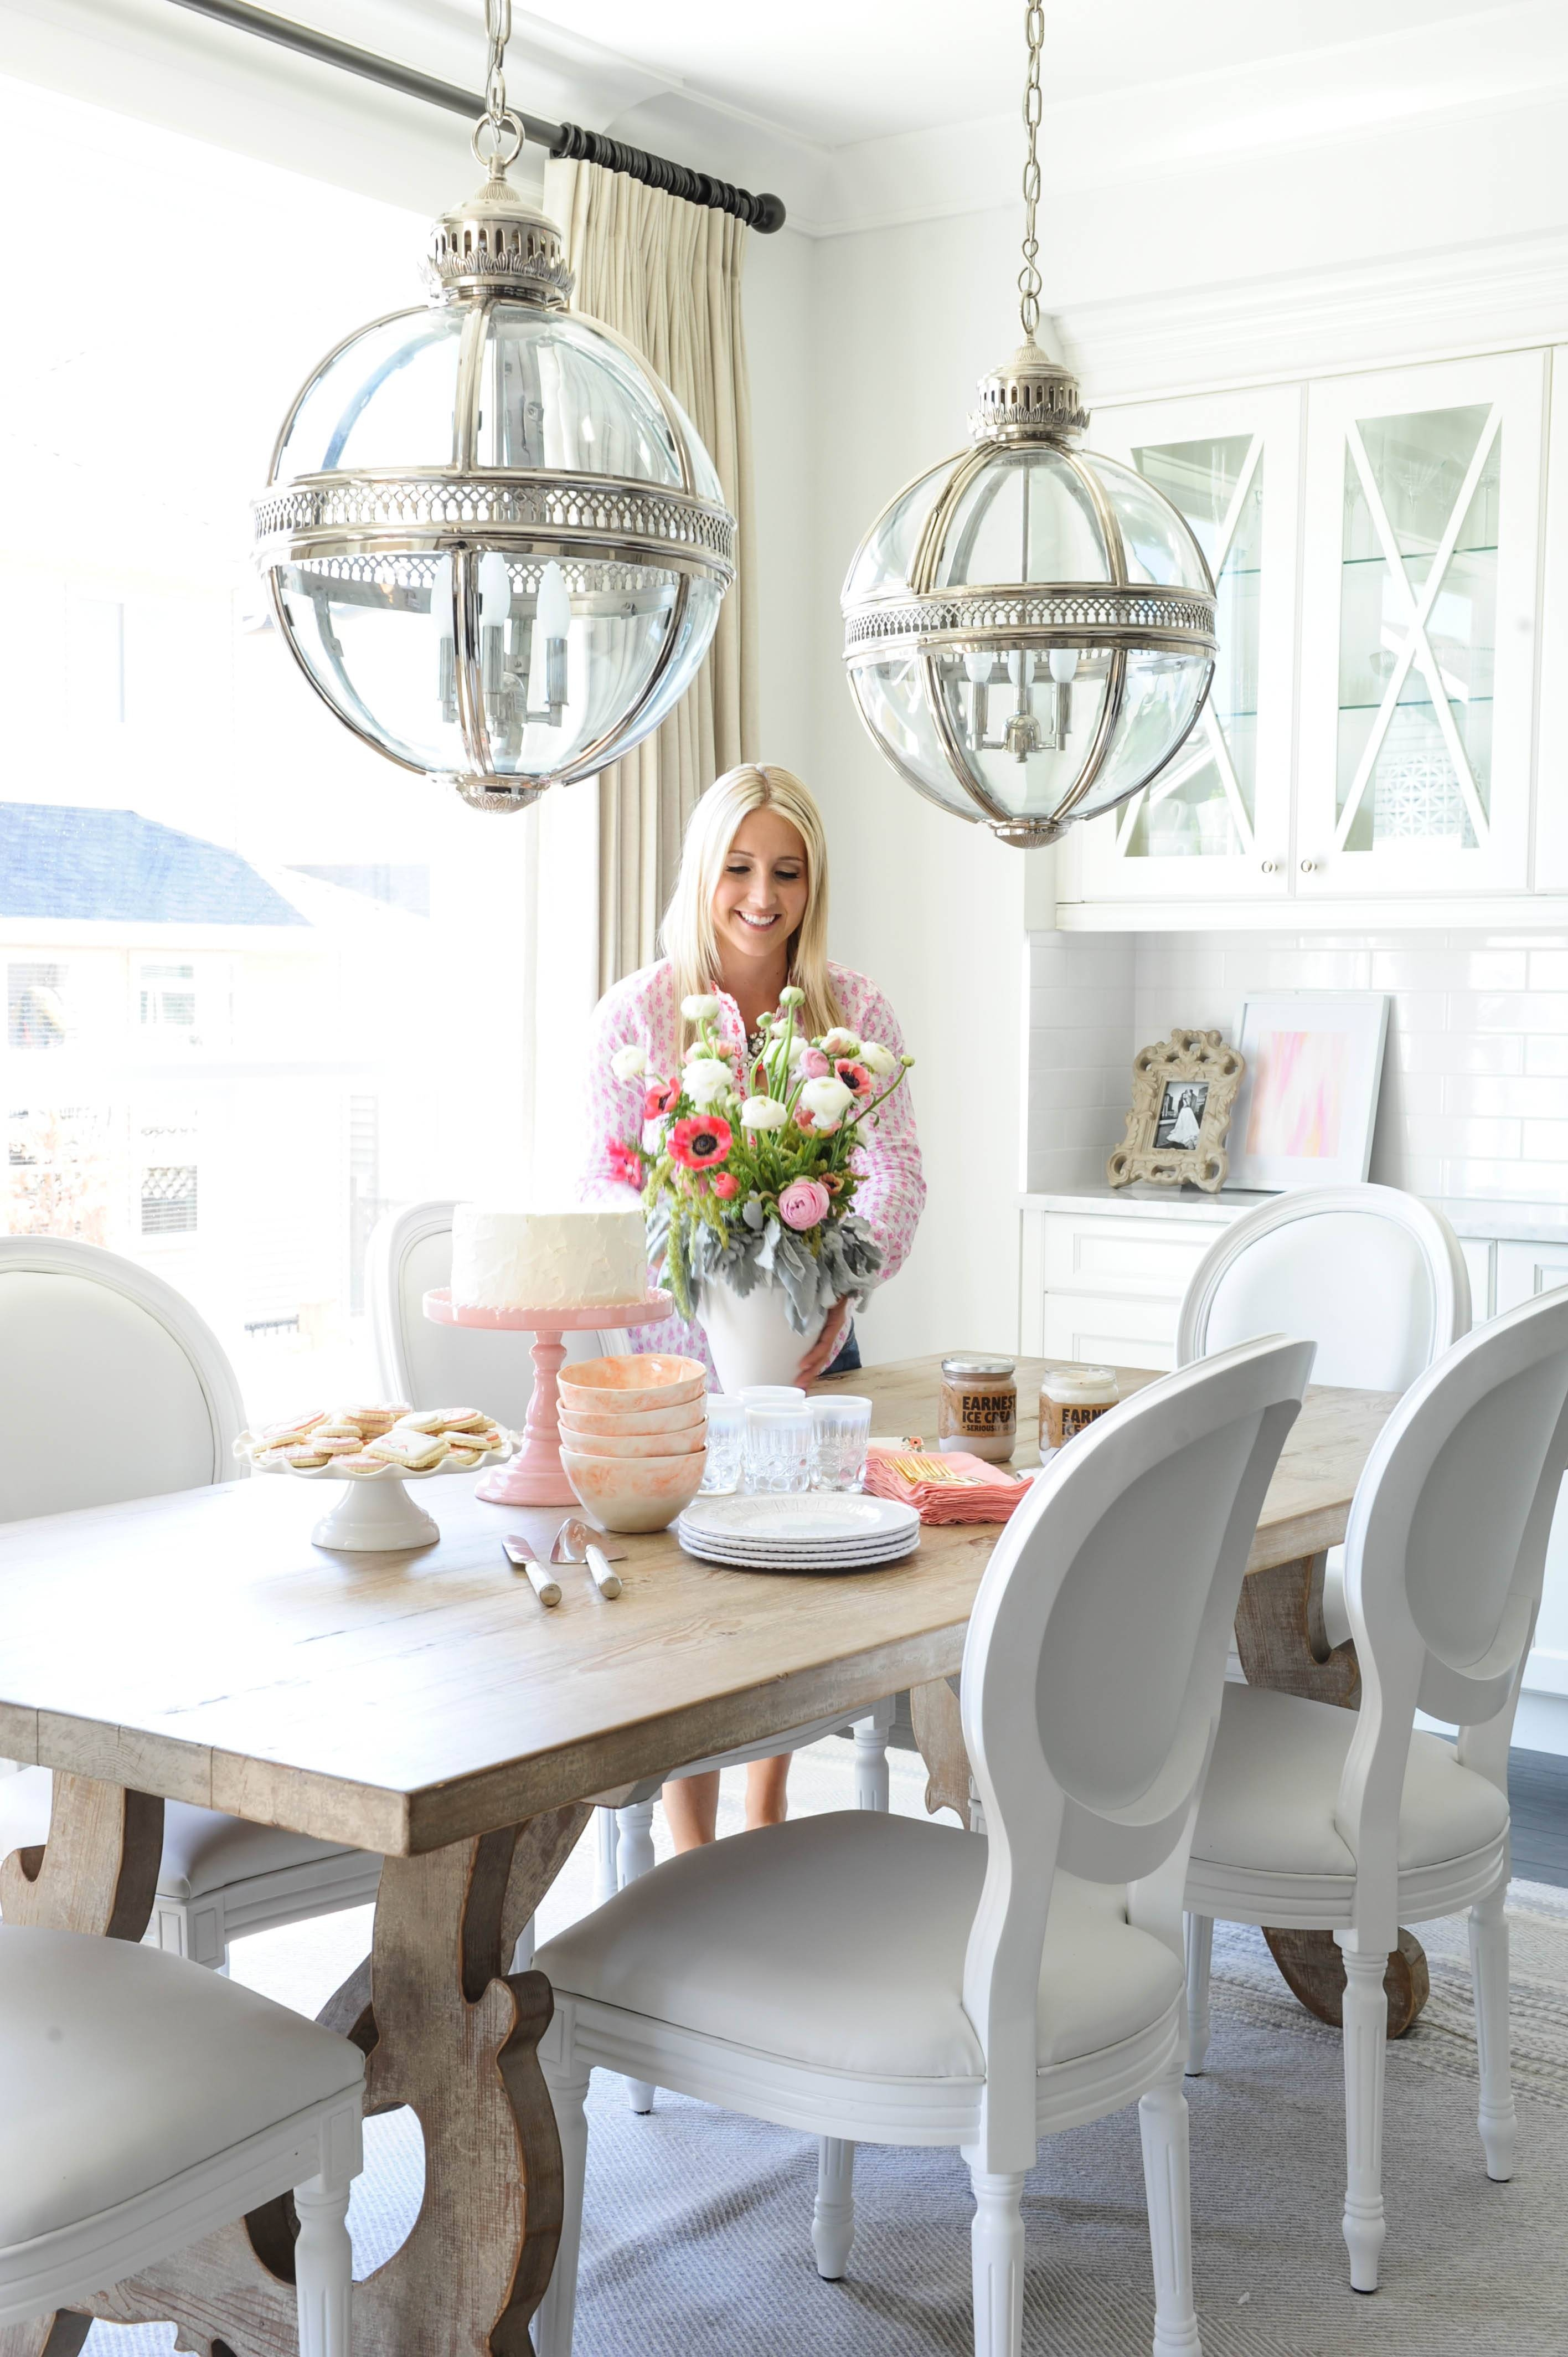 Home Tour | Monika Hibbs within Victorian Hotel Pendants (Image 11 of 15)